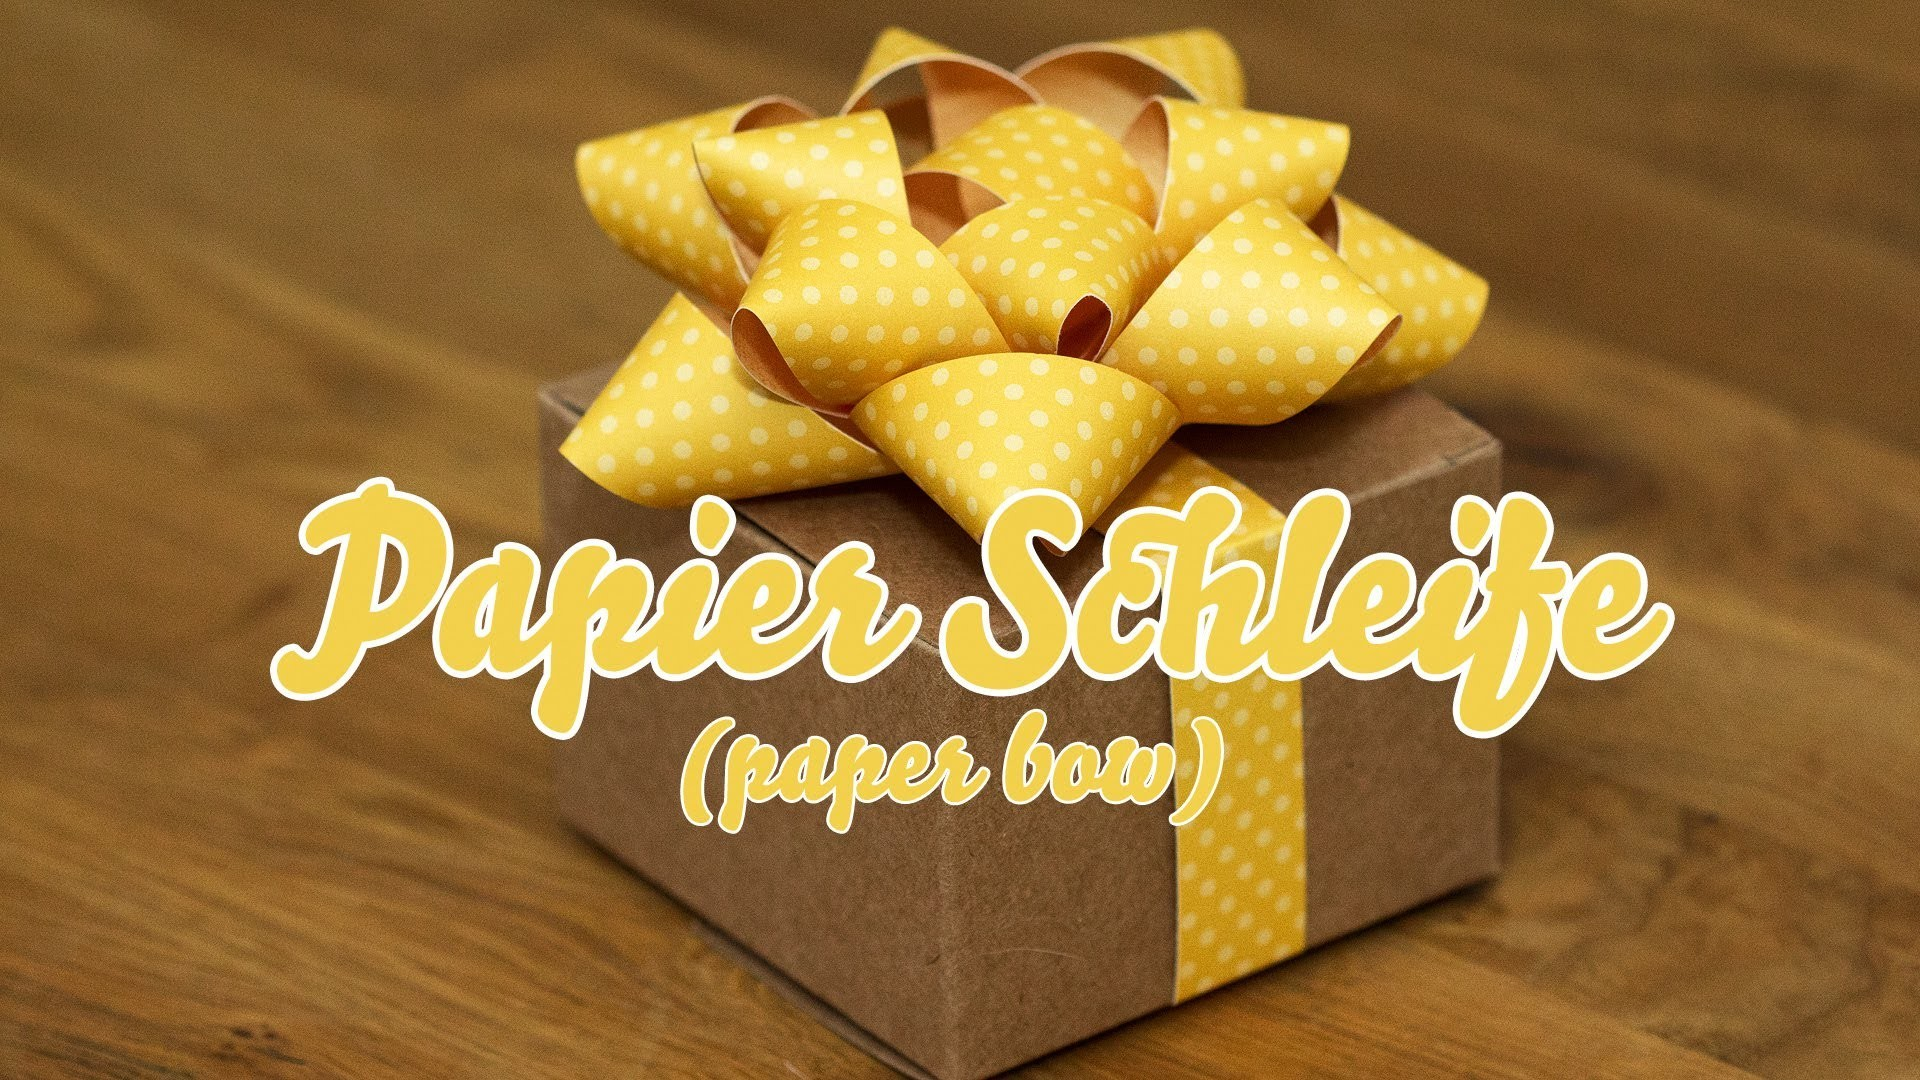 Tutorial - Papierschleife - paper bow